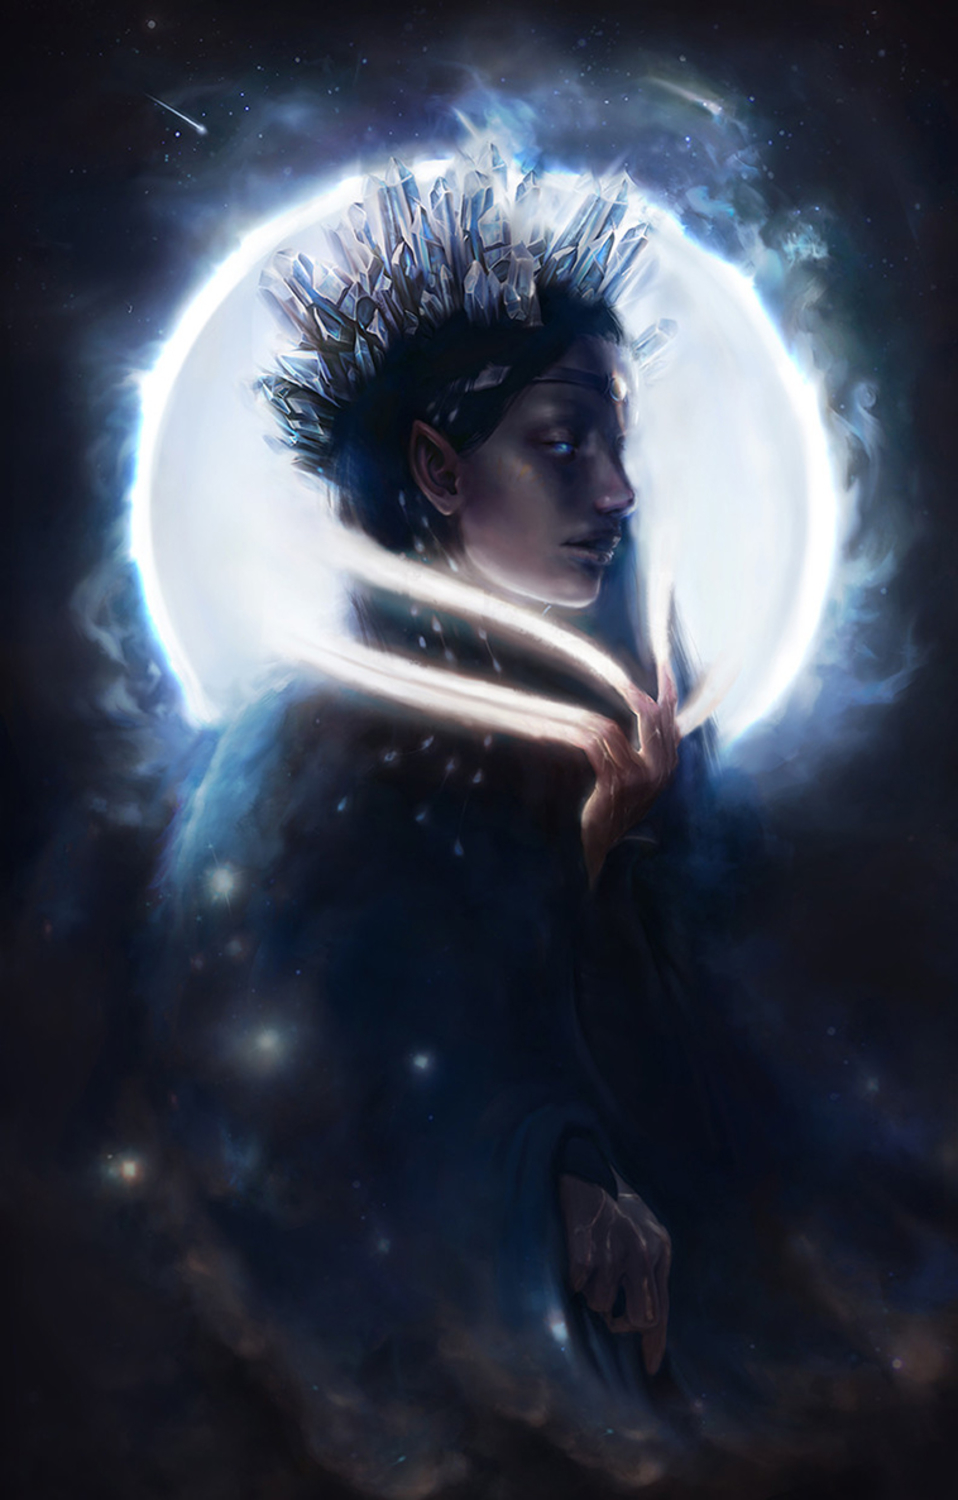 Varda, Queen of the Starrs Artwork by Dymond Starr Boutte'